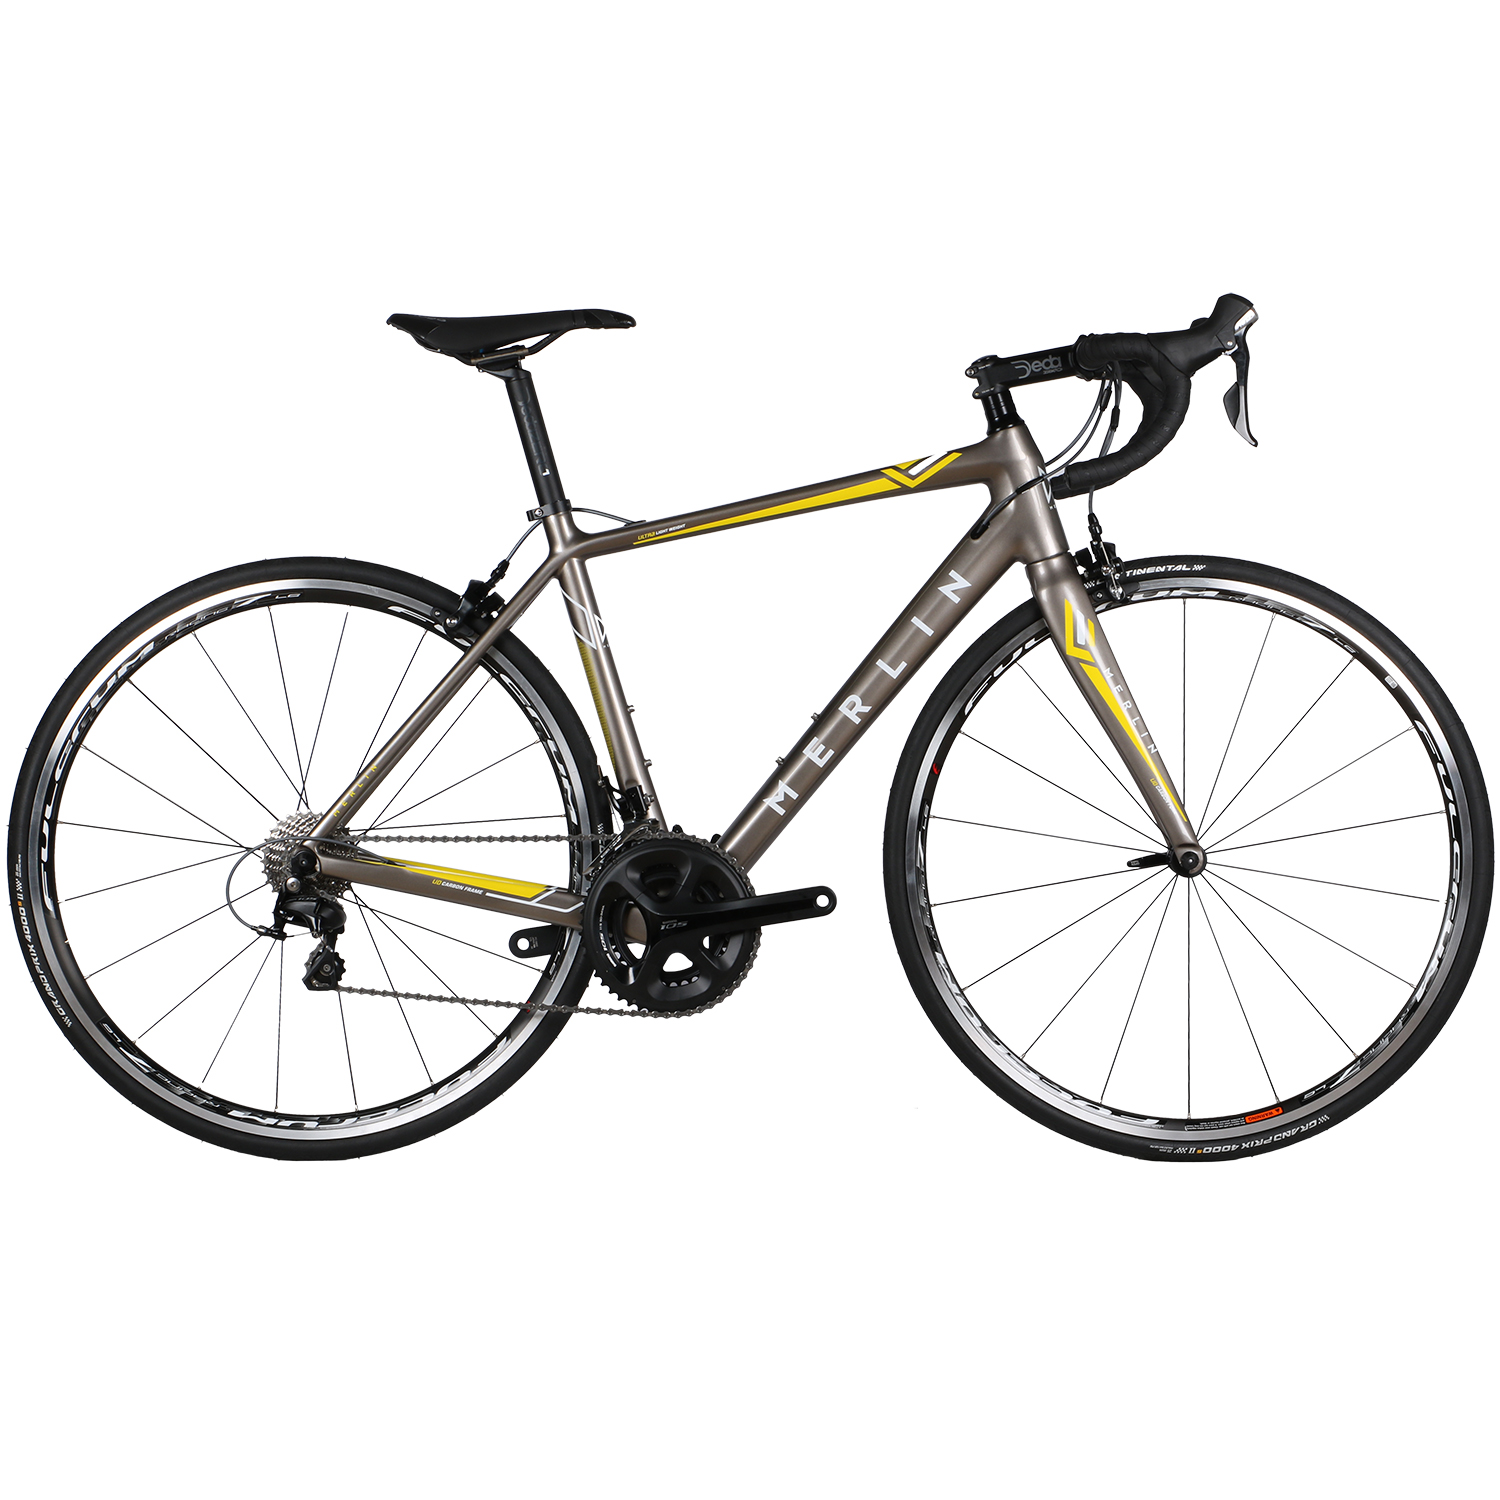 Merlin Cordite 105 R7000 Carbon Road Bike - 2019